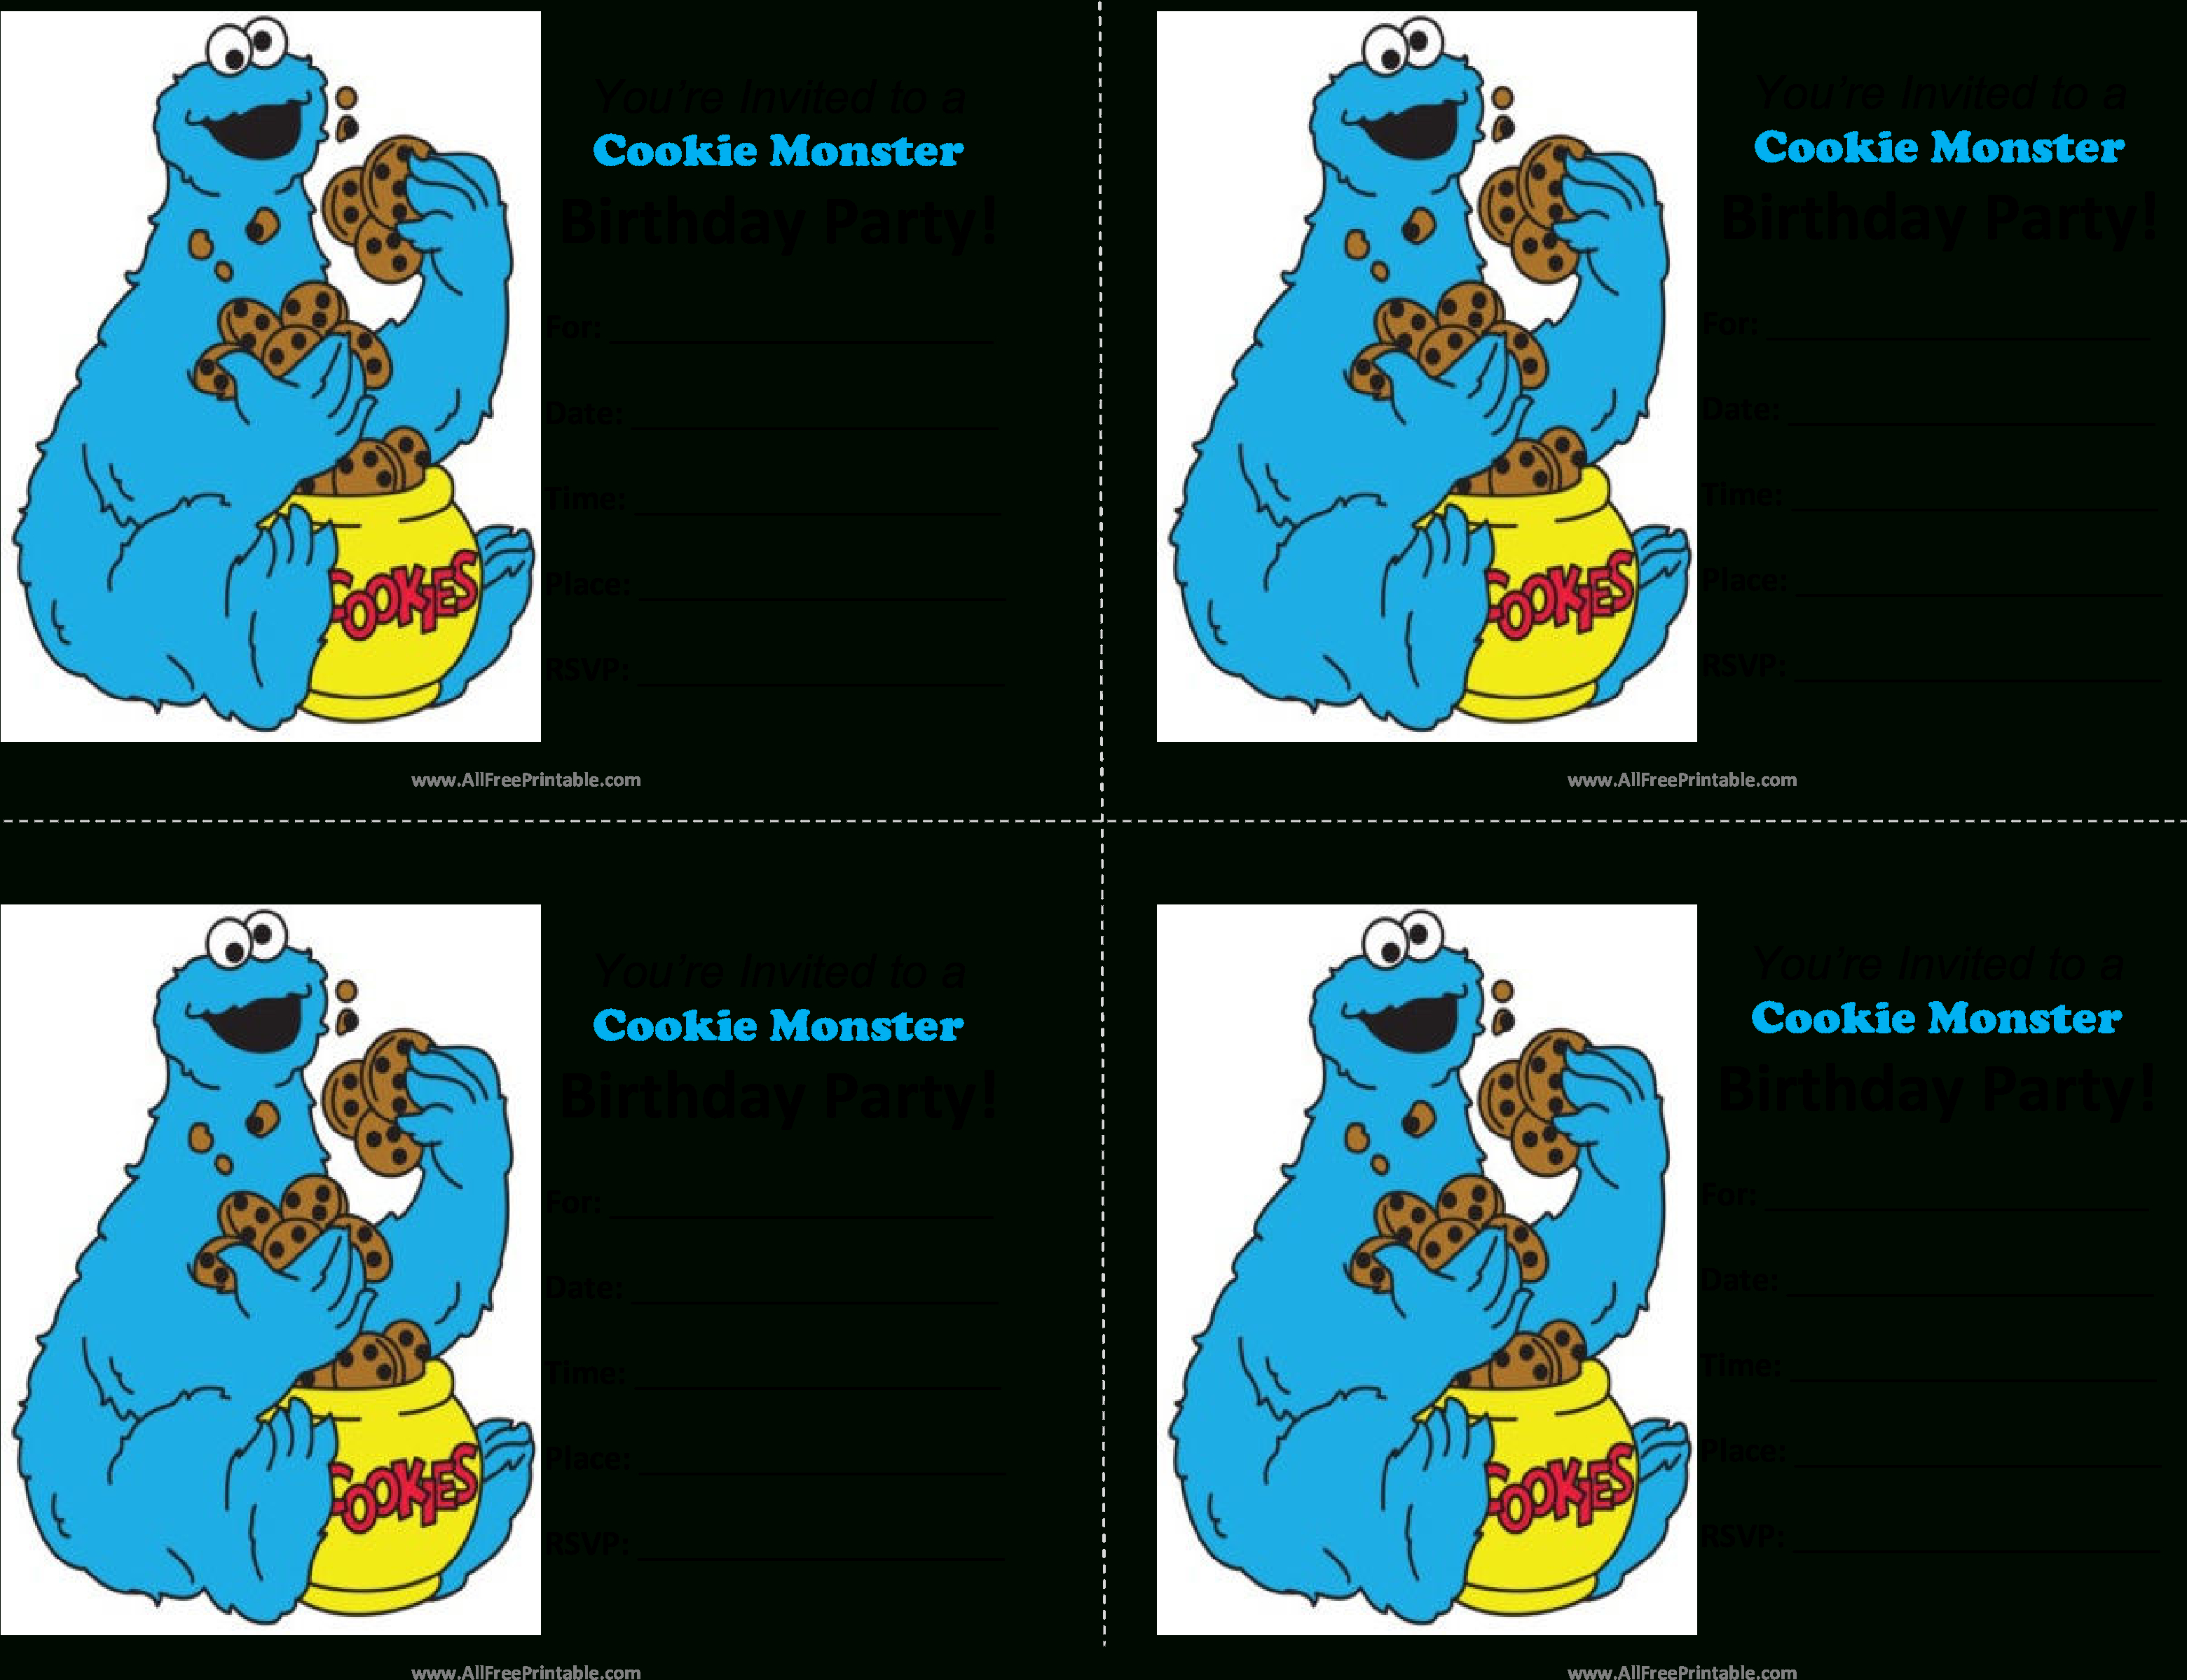 Download Cookie Monster Birthday Invitations Main Image - Blank - Free Printable Cookie Monster Birthday Invitations